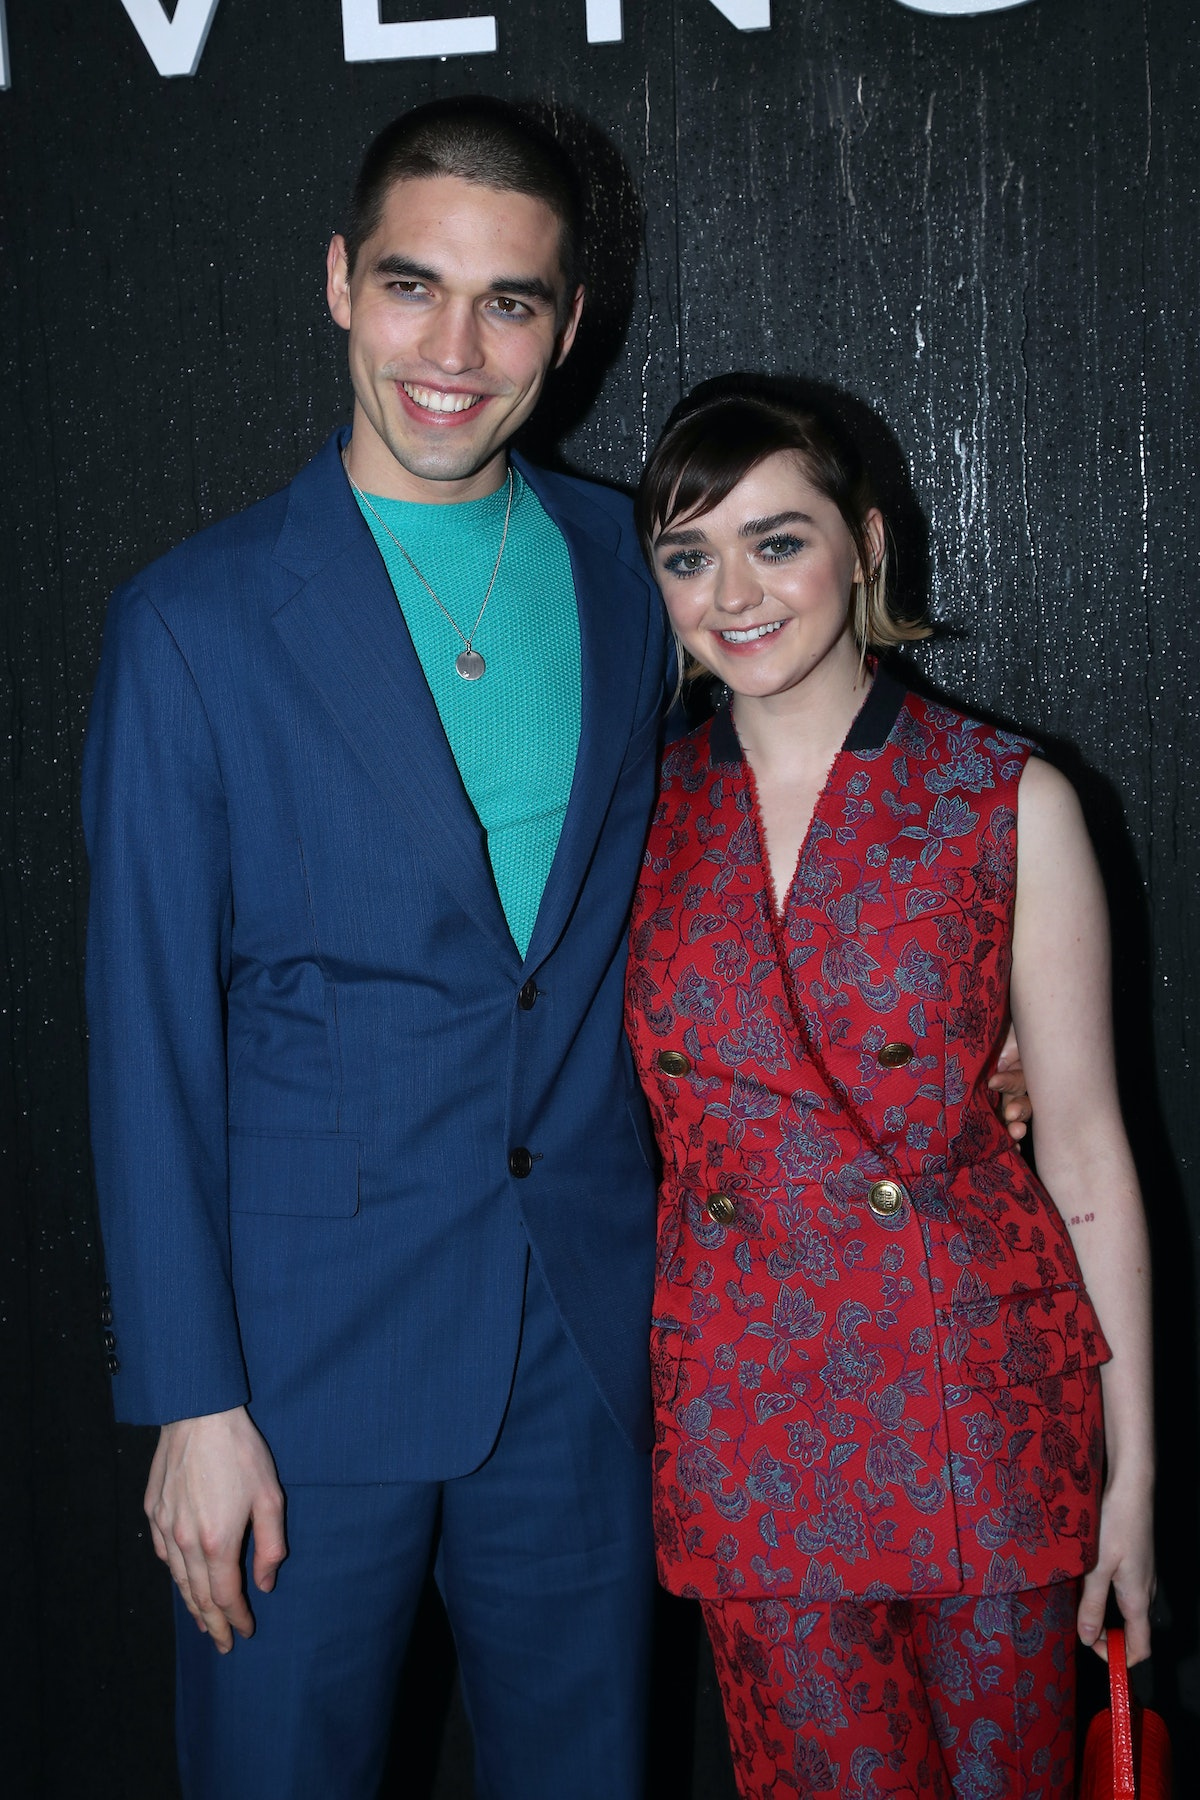 PARIS, FRANCE - MARCH 01: (EDITORIAL USE ONLY) Maisie Williams and her boyfriend Reuben Selby attend...